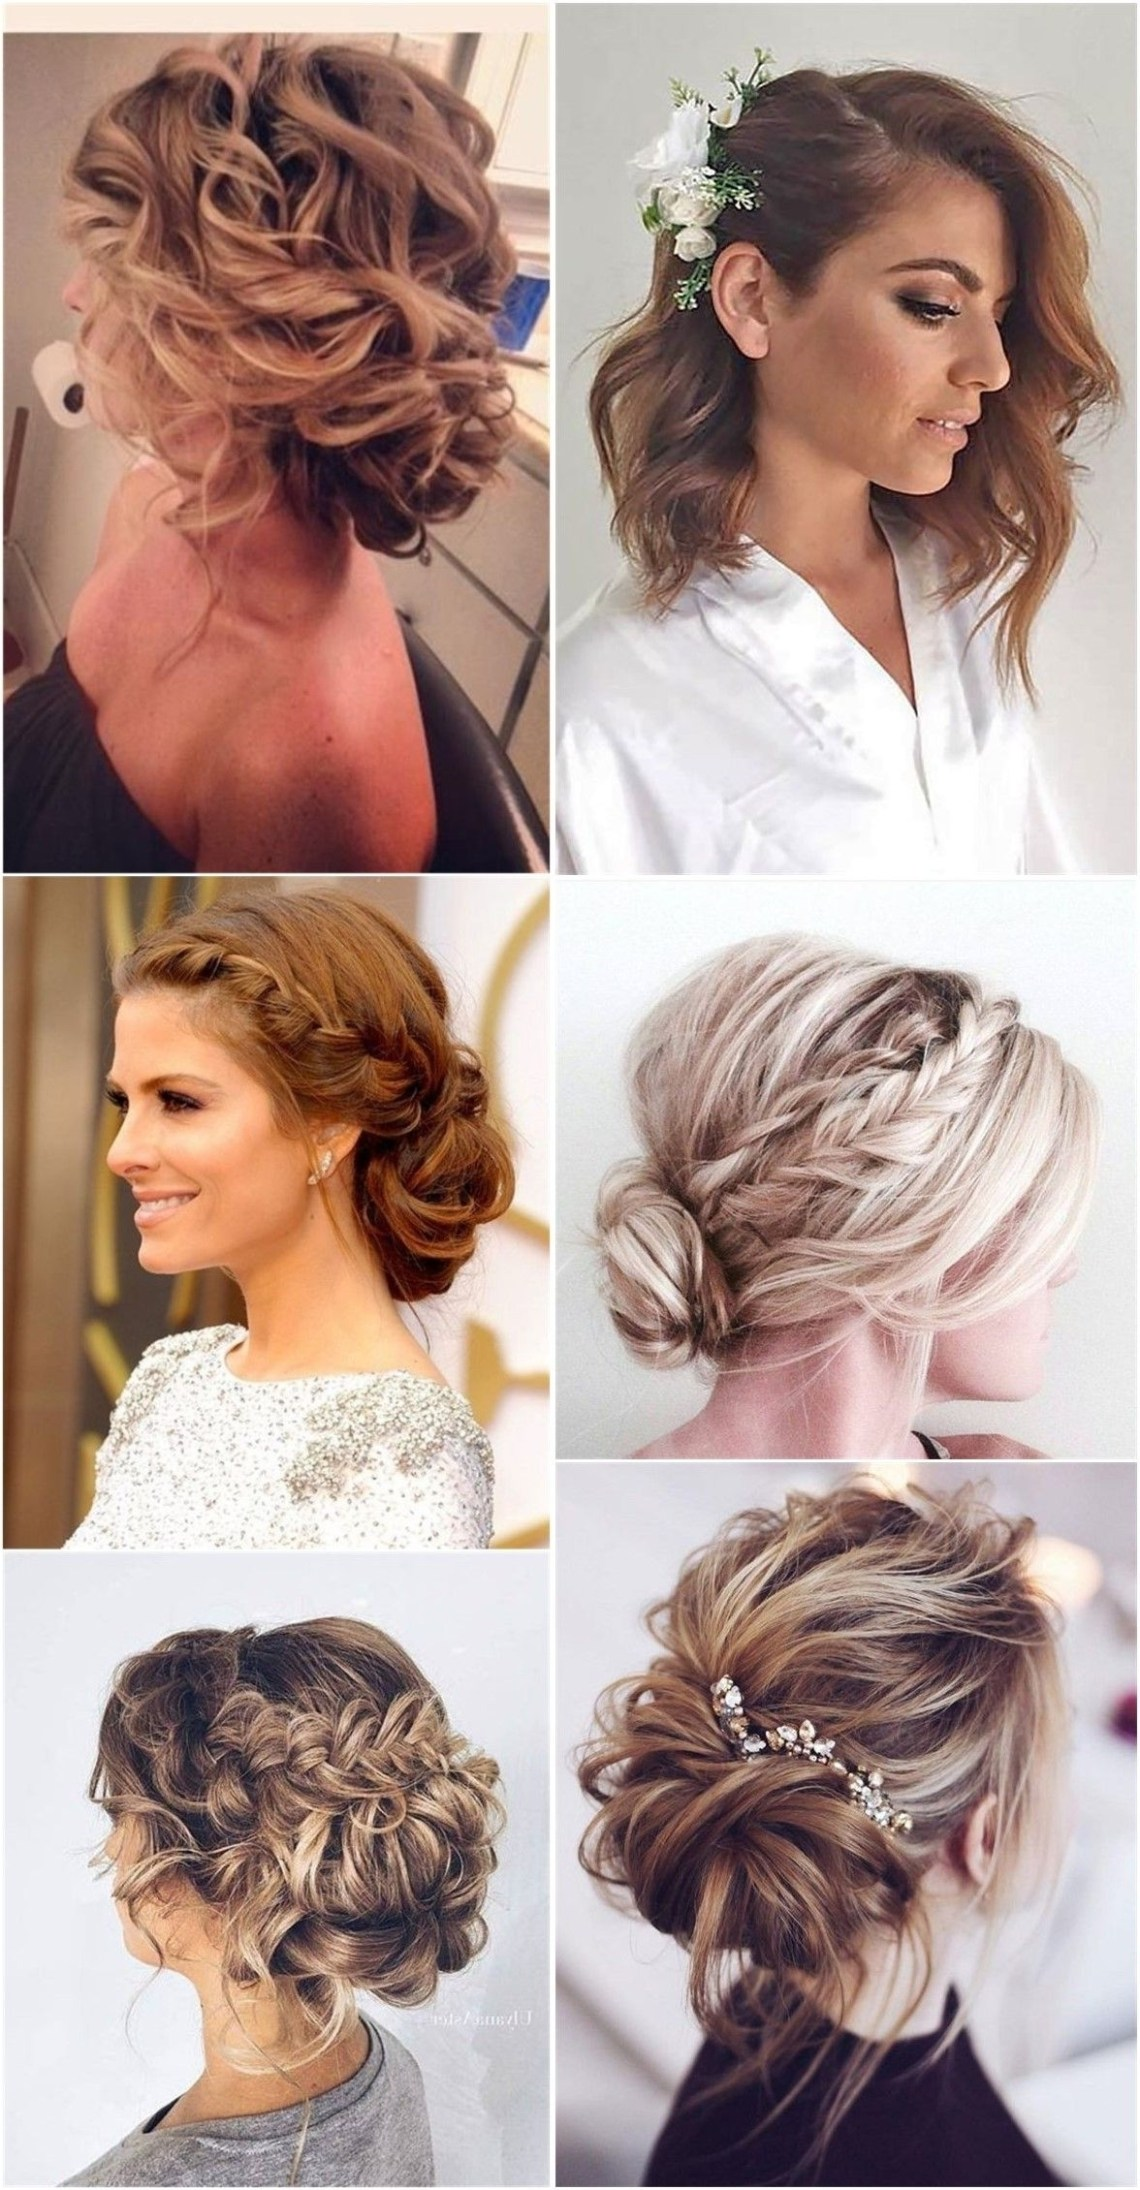 Pin On Wedding Hairstyles Wedding Hairstyles For Medium Length Hair With Bangs